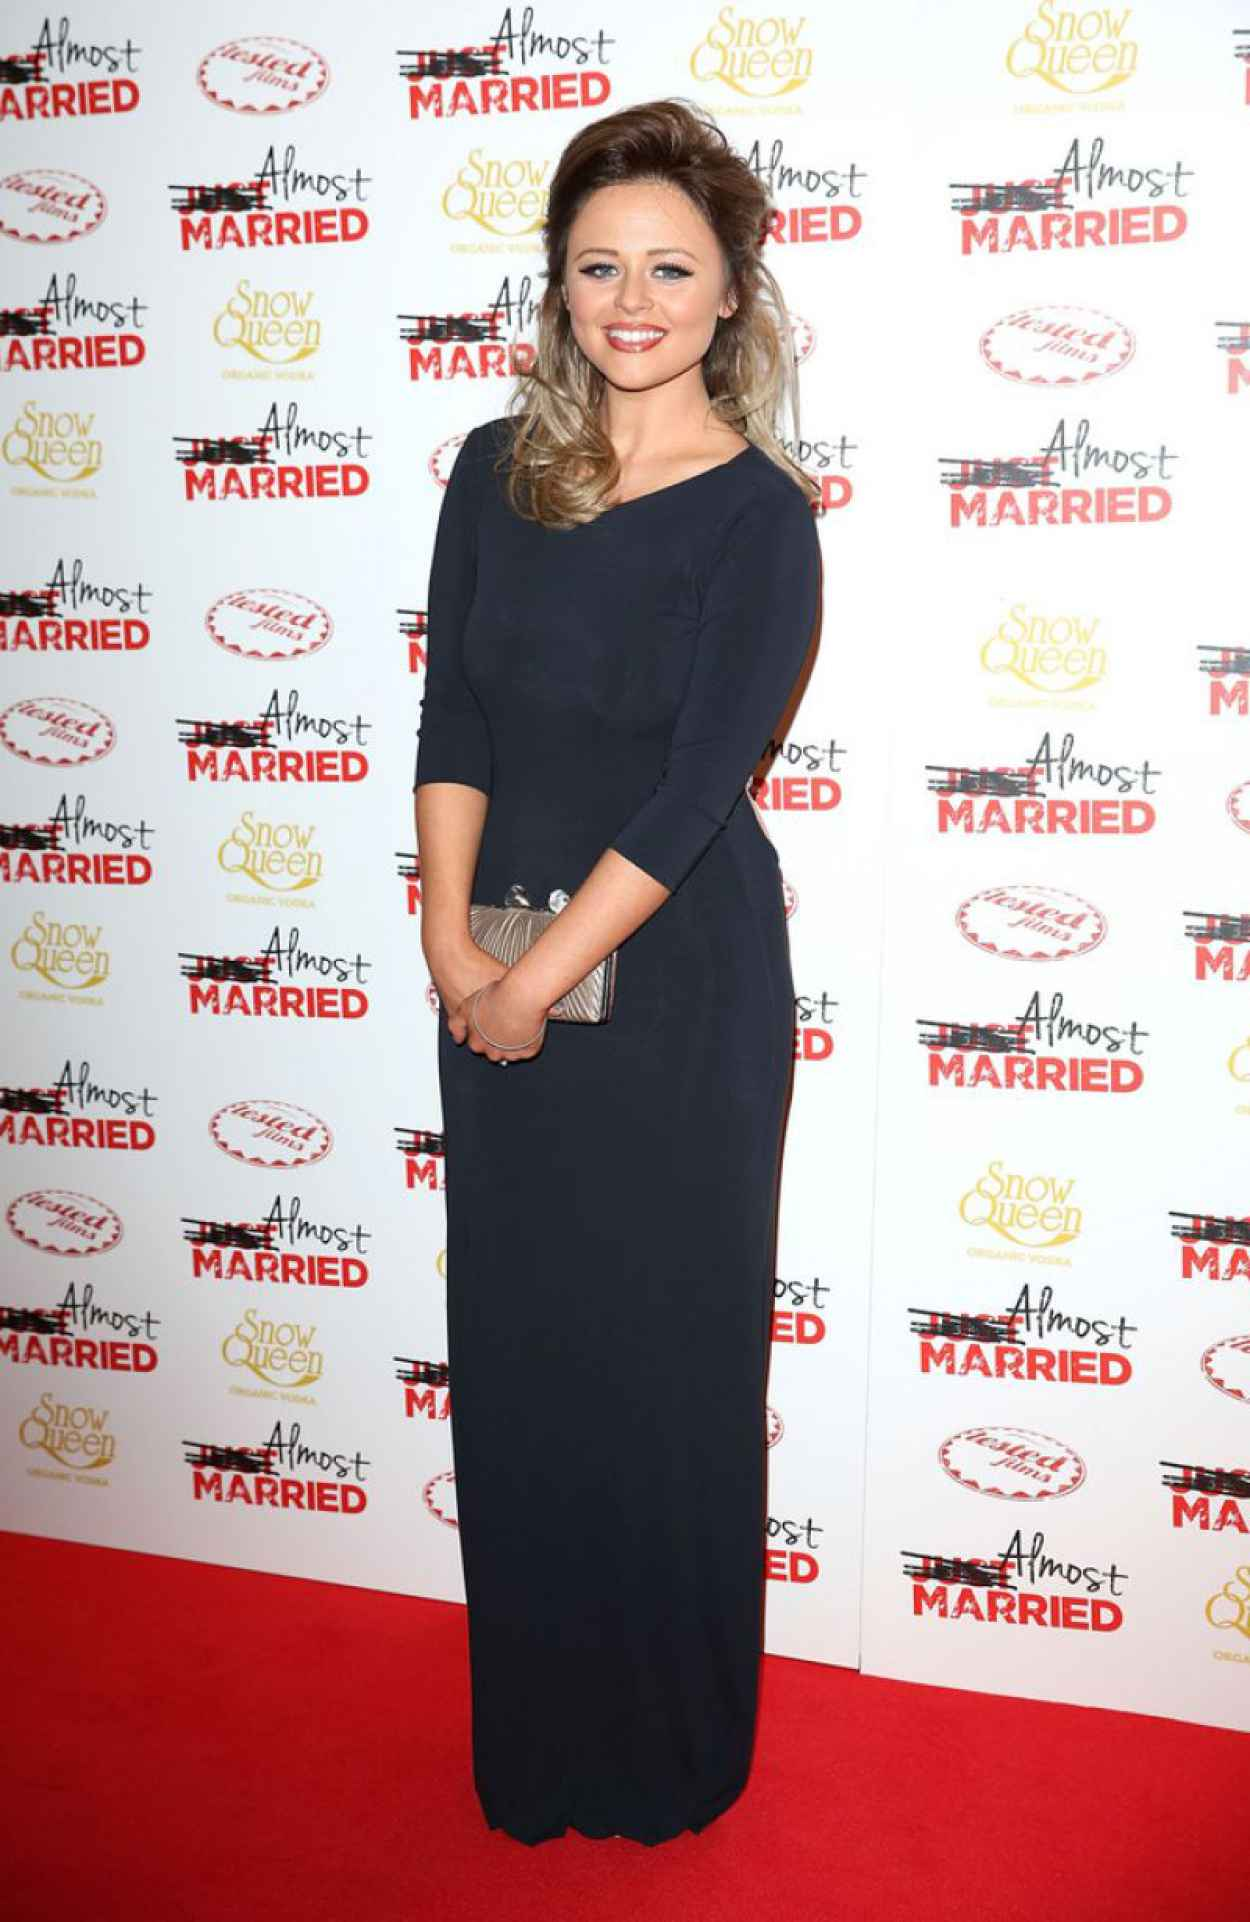 Emily Atack on Red Carpet - Almost Married Screening in London-2